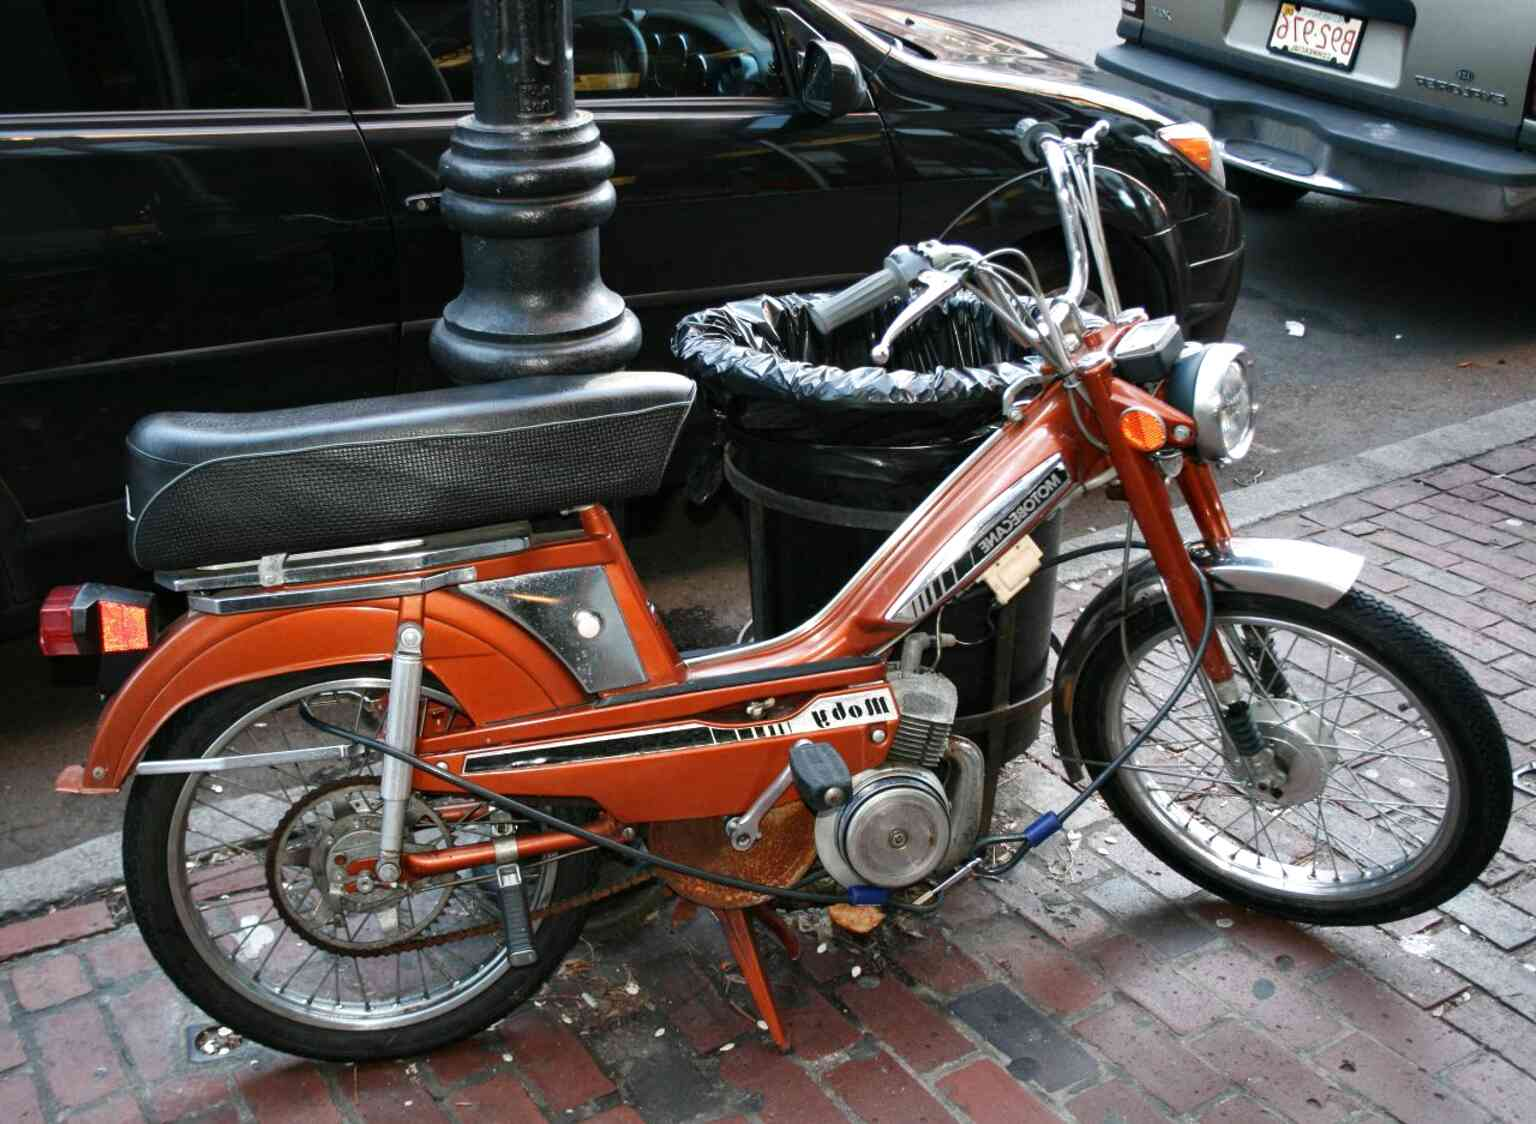 Motobecane Moped For Sale Only 3 Left At 70